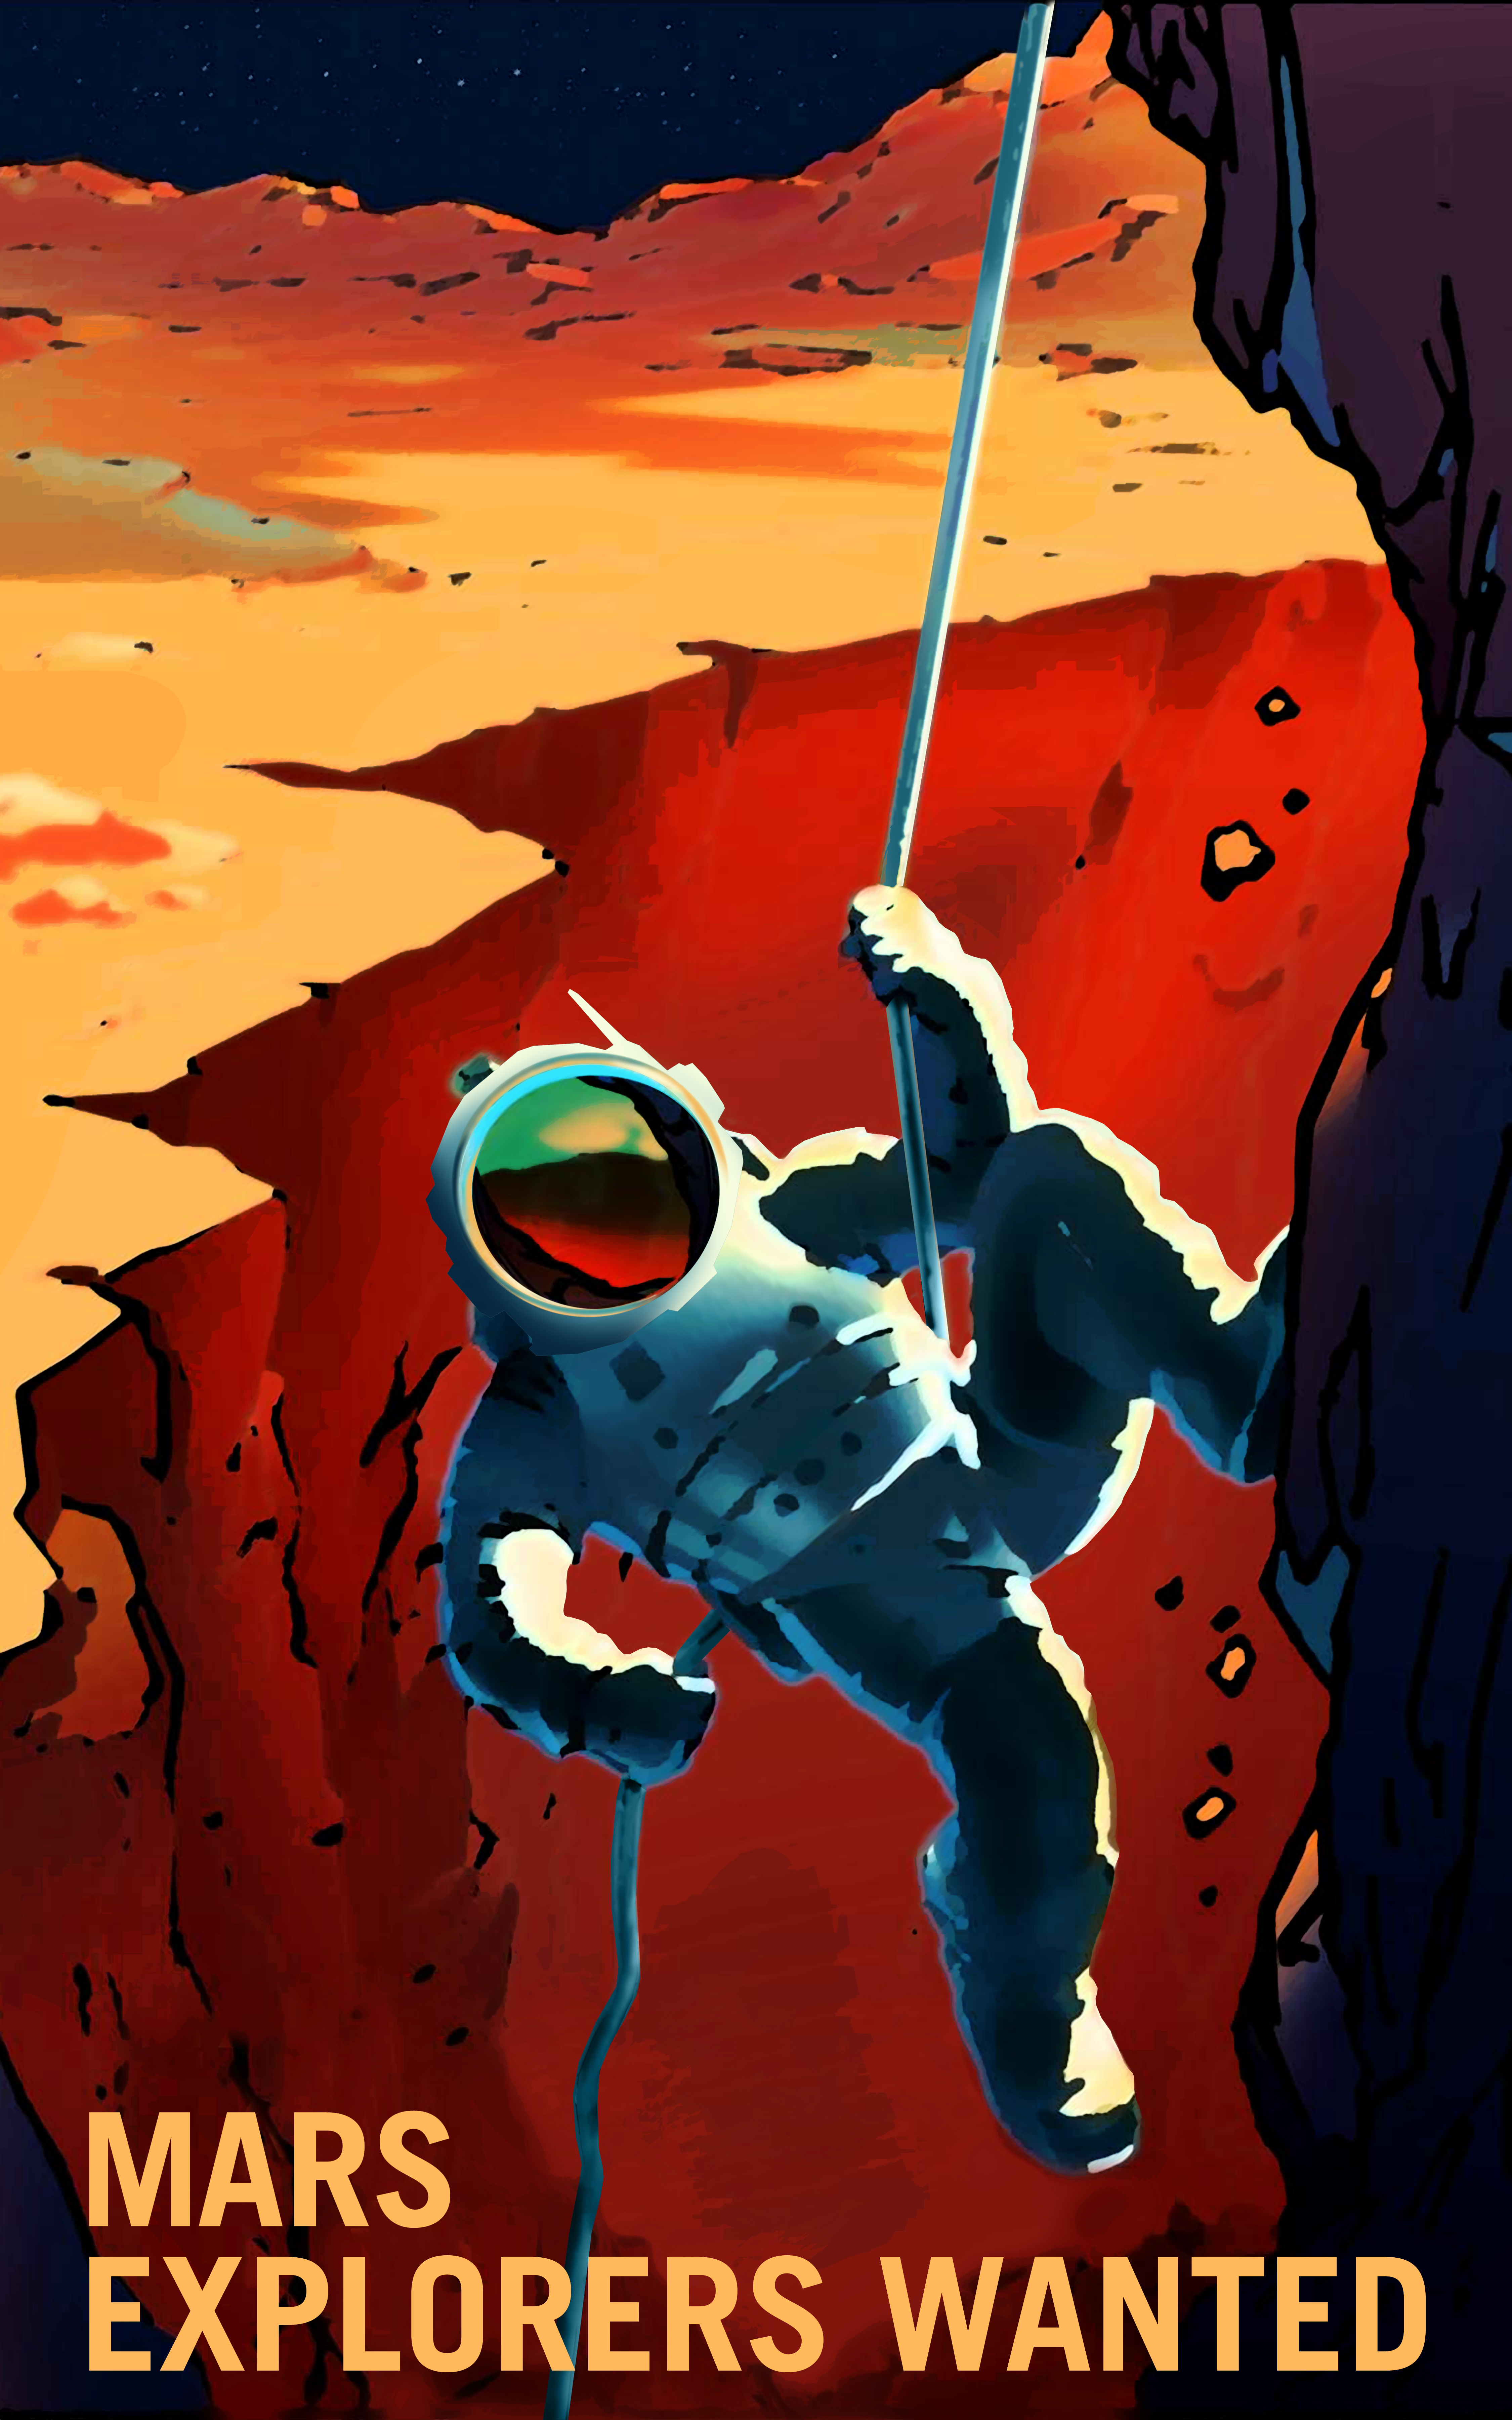 Mars explorers wanted posters mars exploration program for Space poster design